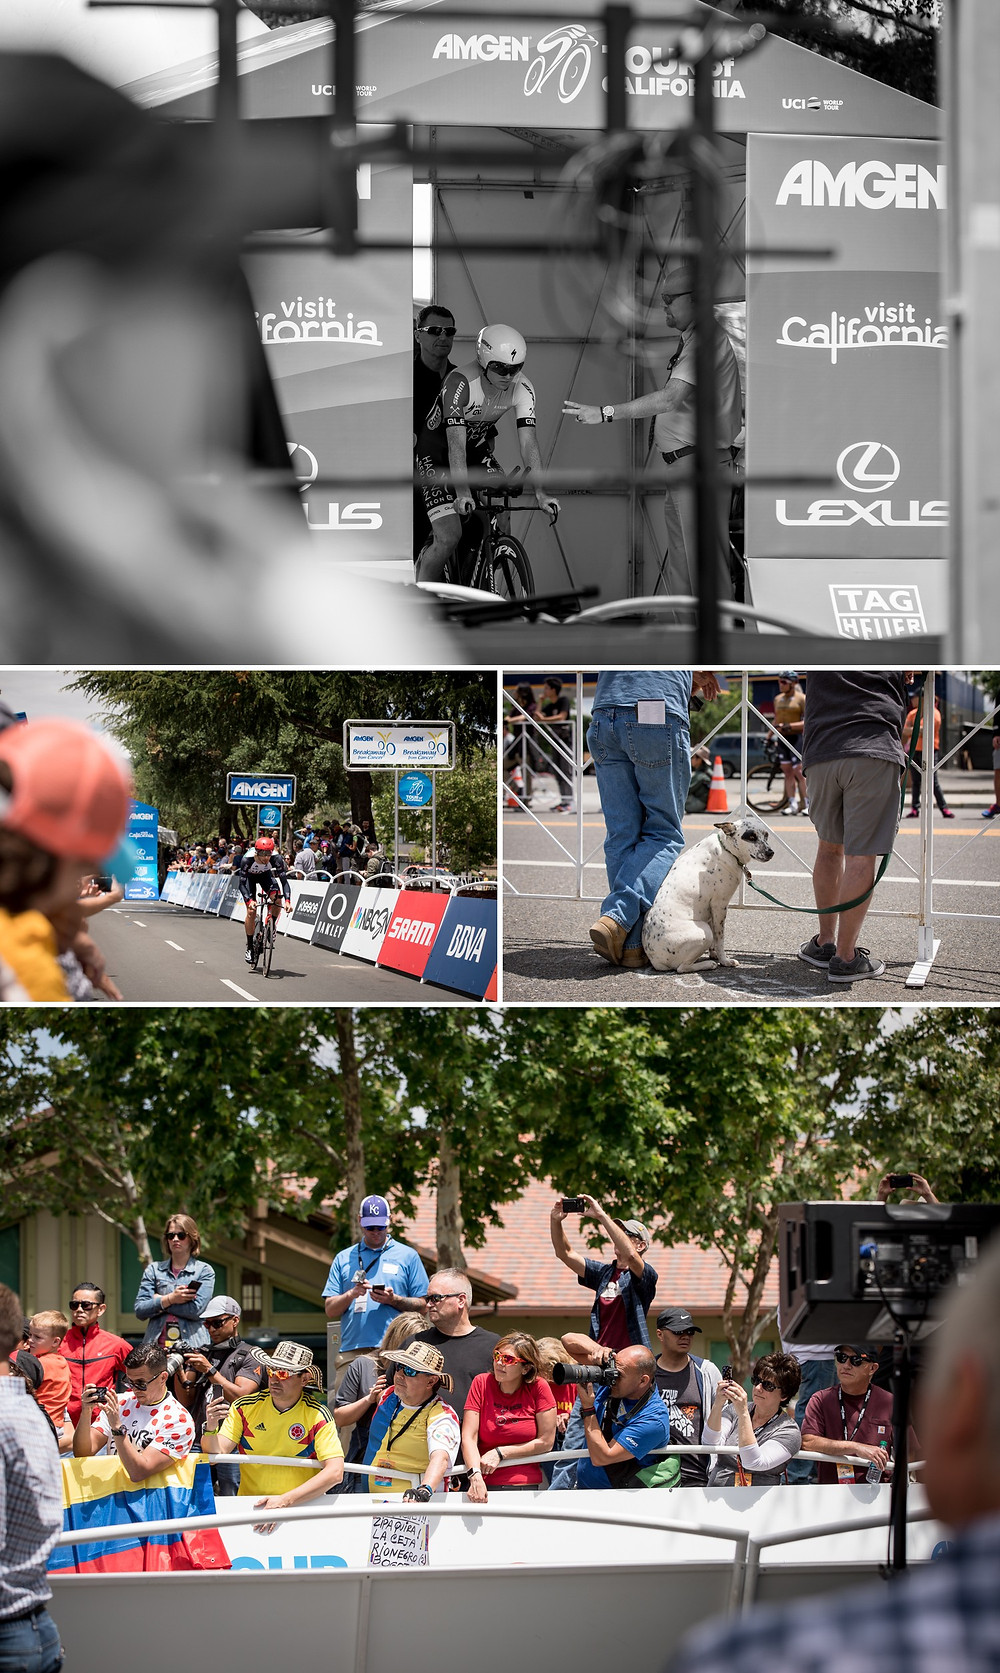 The AMGEN tour start line in downtown Morgan Hill.